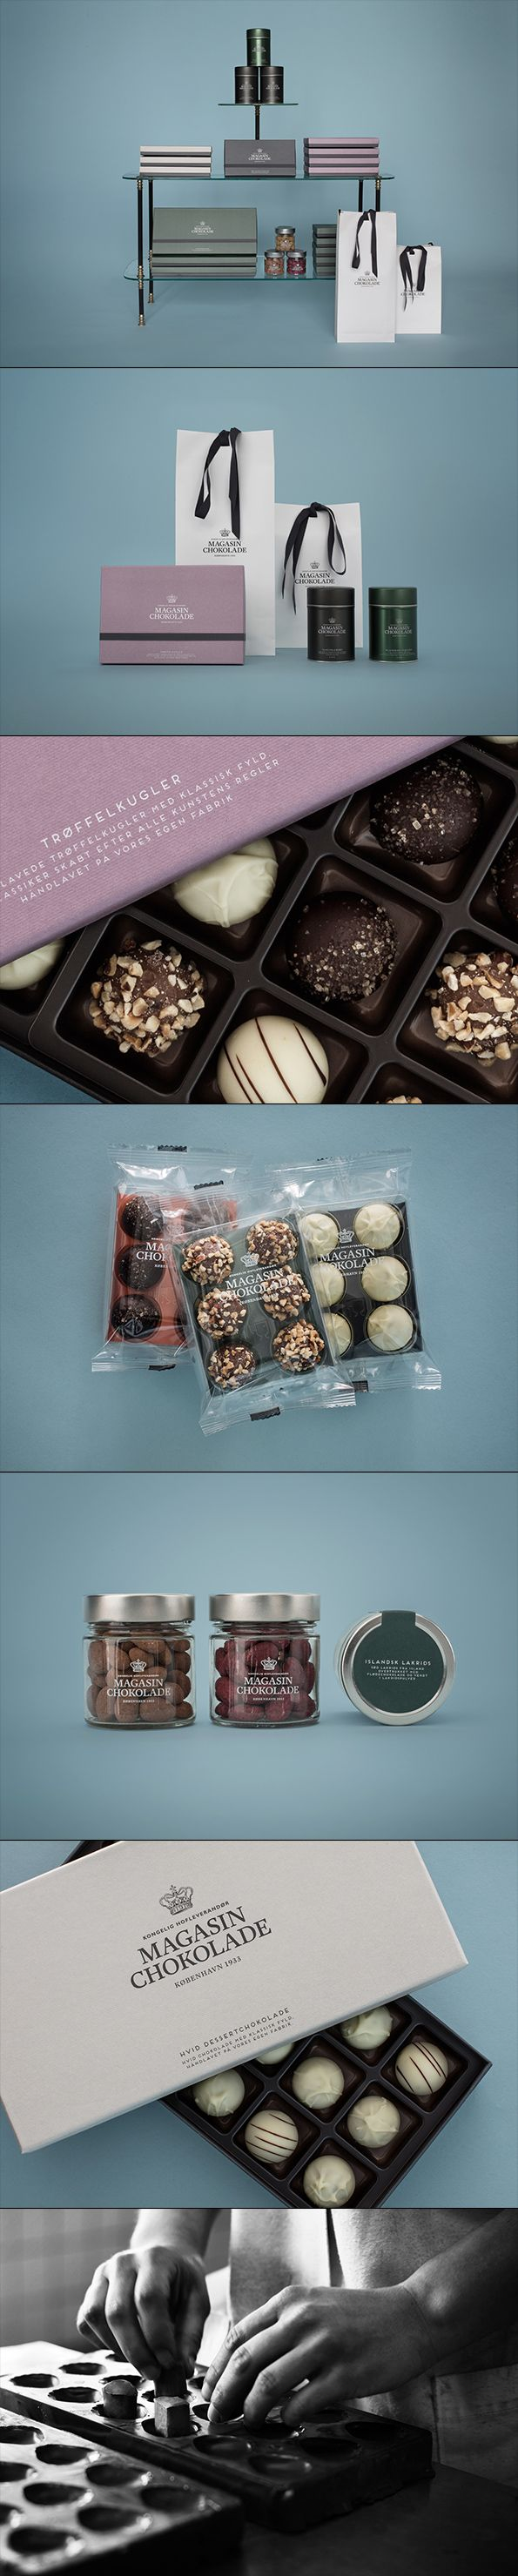 Beautiful #chocolate #redesign Magasinchokolade #identity love the textured boxes and simplicty in styling